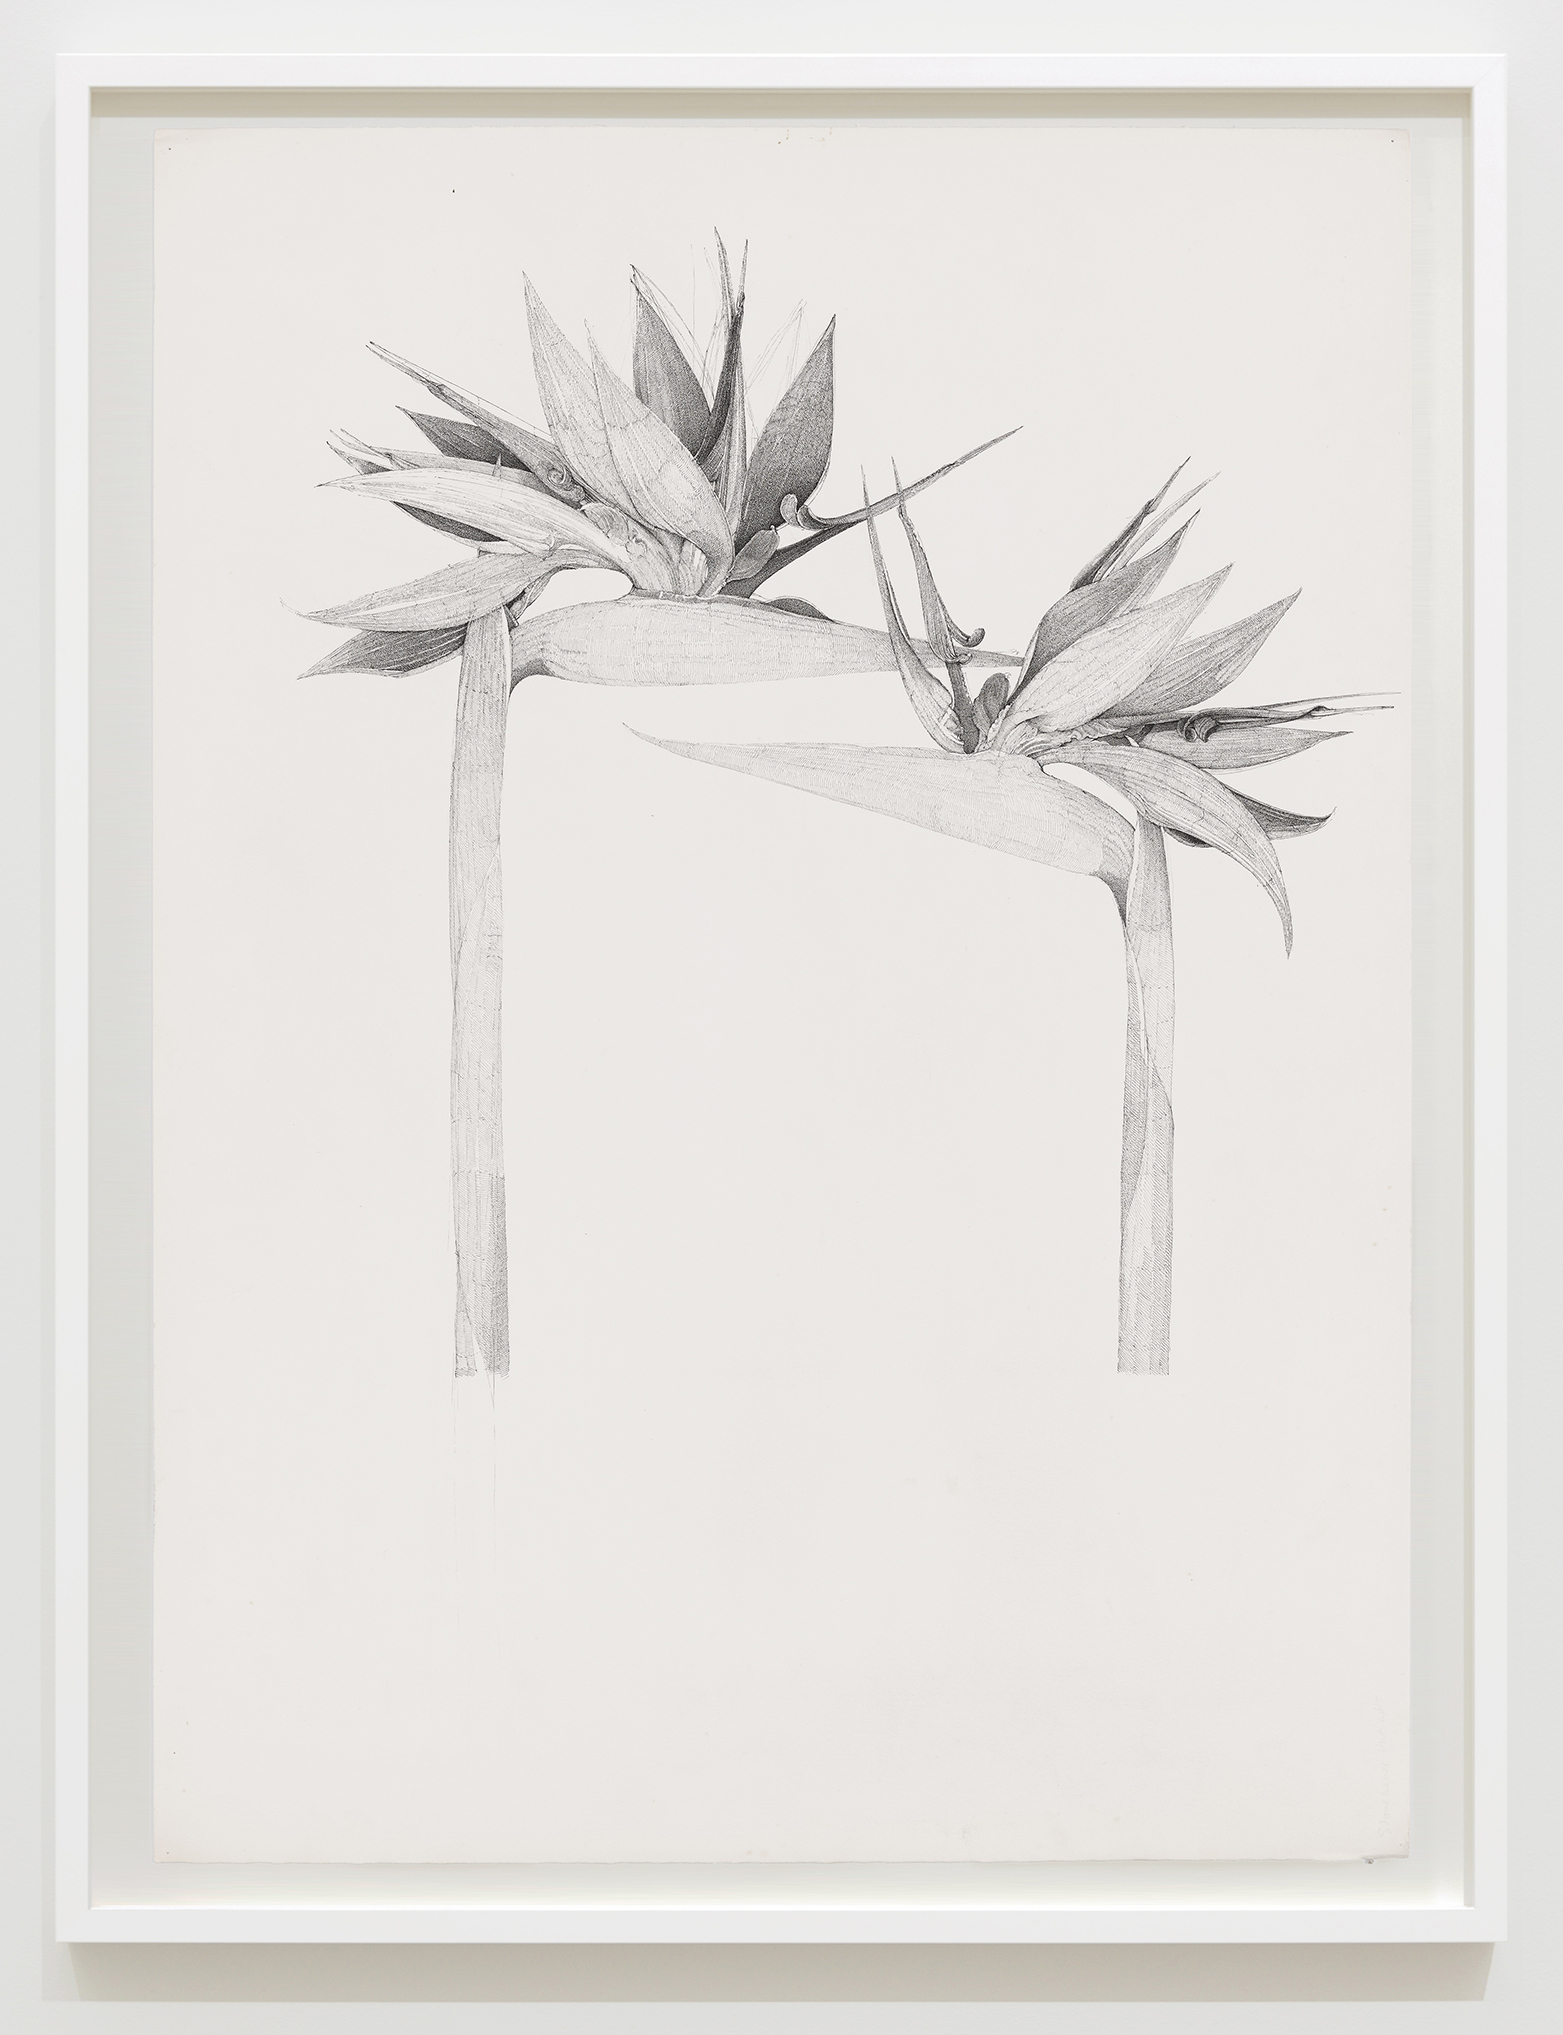 Charmian Johnson, not titled, unknown date, ink and graphite on paper, 34 x 26 in. (85 x 65 cm) by